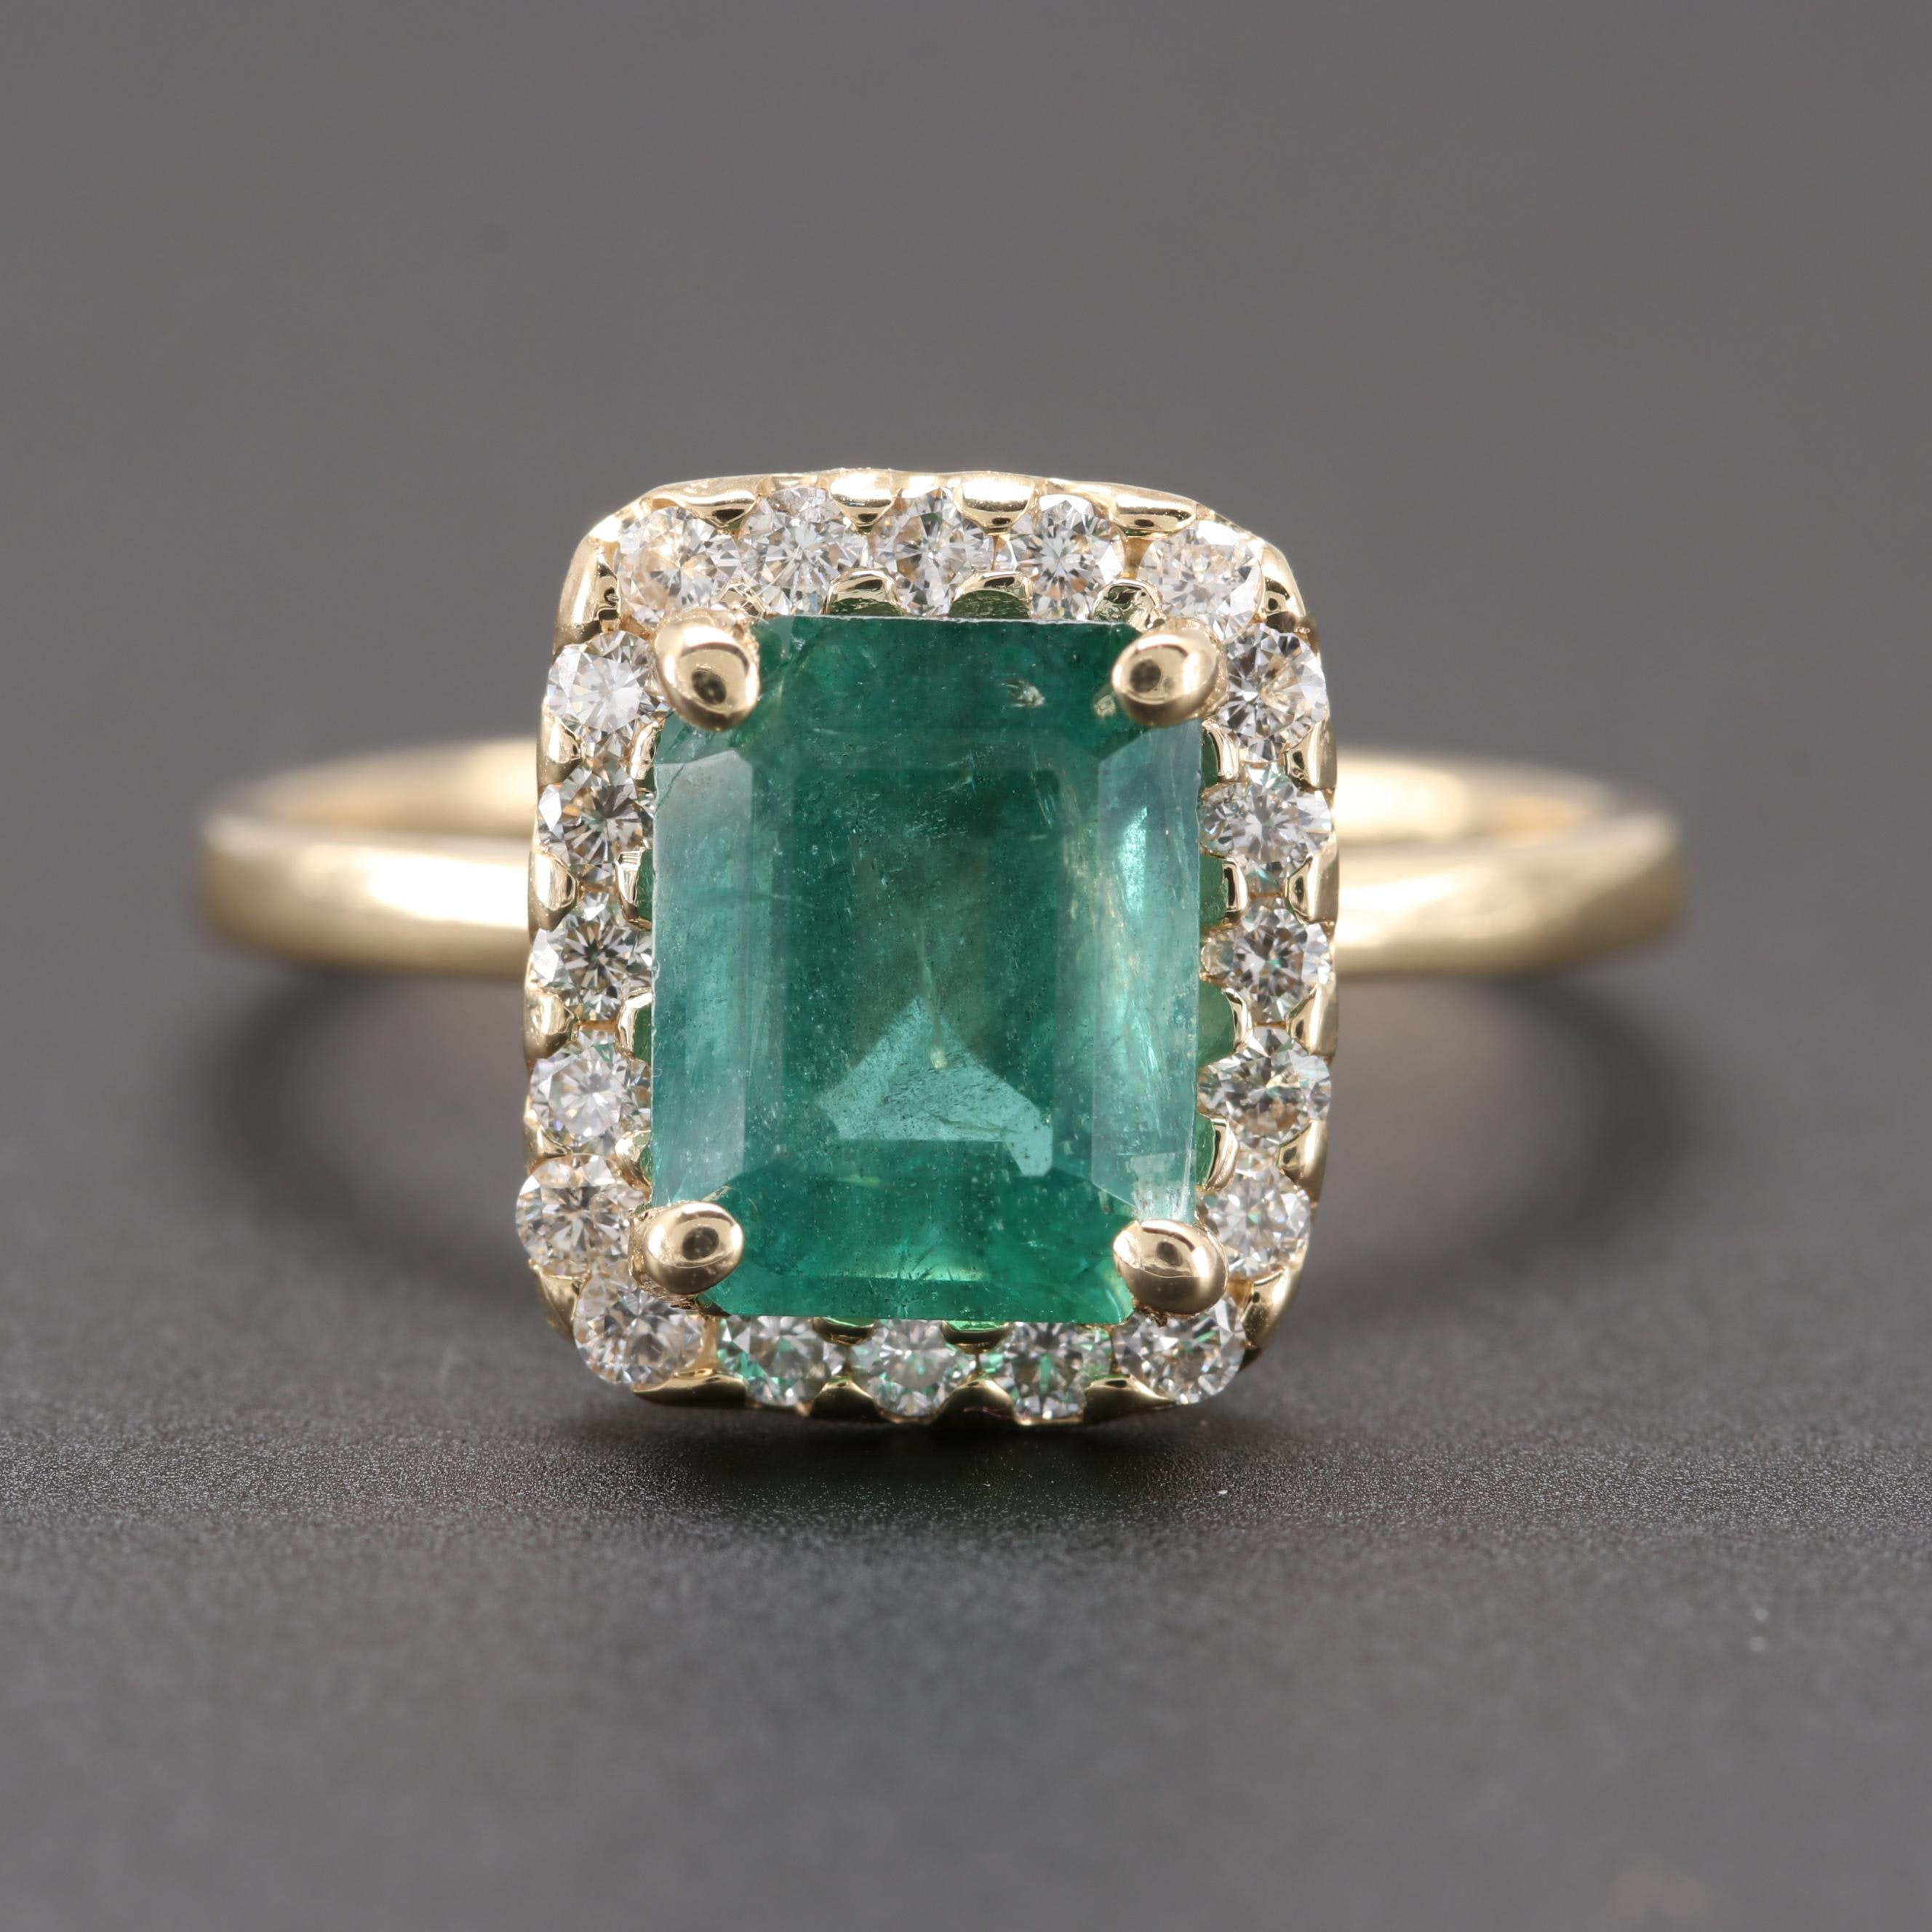 14K Yellow Gold 2.01 CT Emerald and Diamond Ring